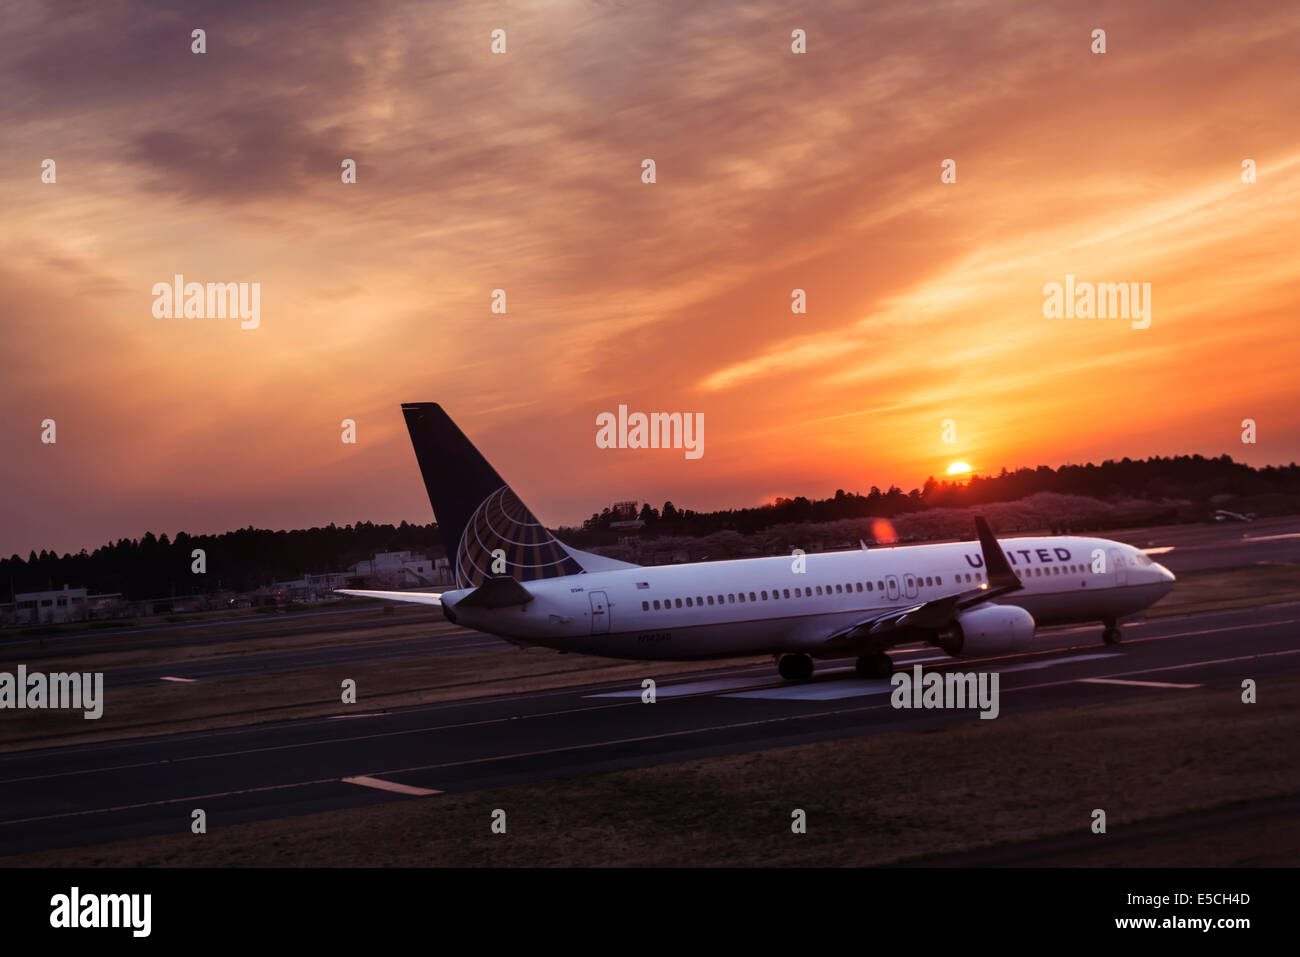 United Airlines airplane taking off on a runway at Narita International airport during sunset. Japan. - Stock Image